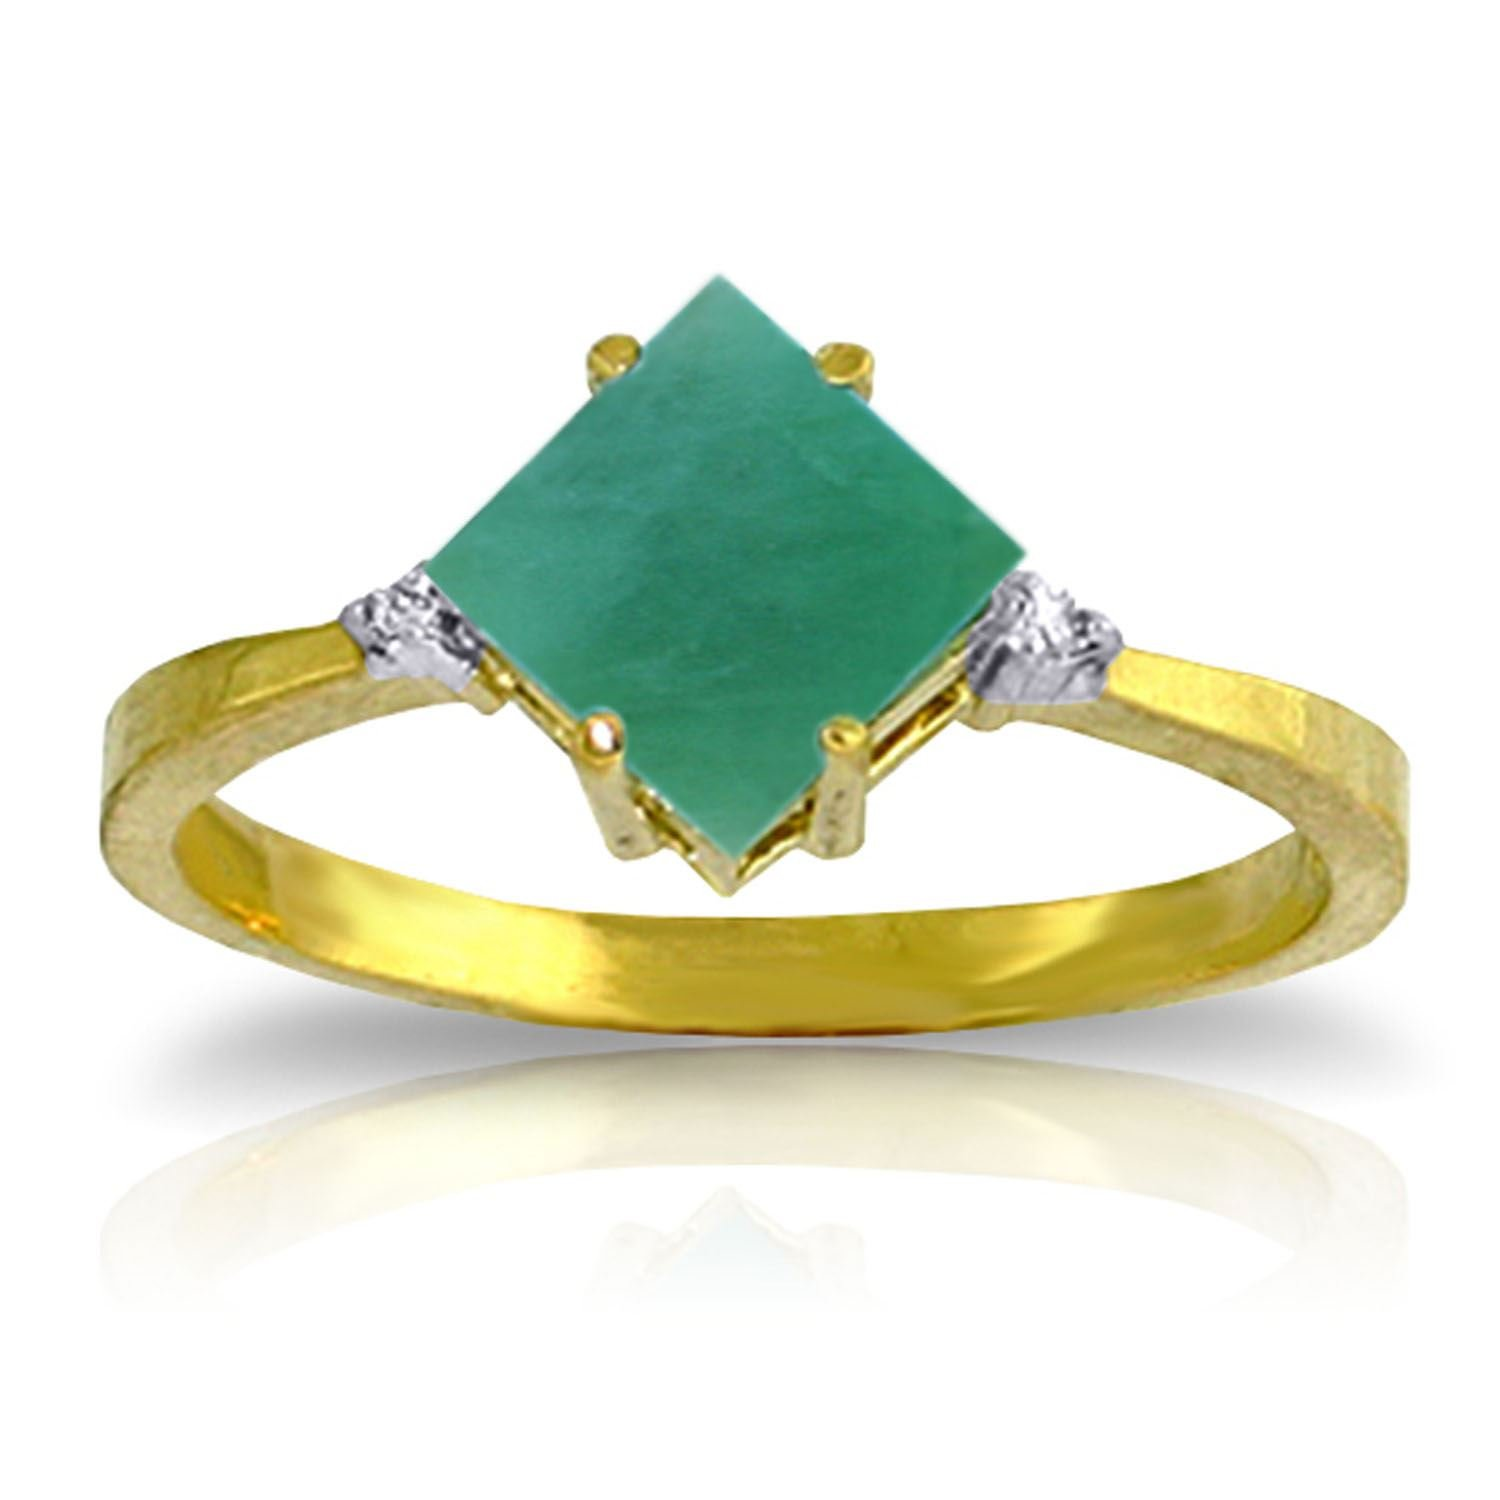 ALARRI 1.46 Carat 14K Solid Gold Love In A Frame Emerald Diamond Ring With Ring Size 9